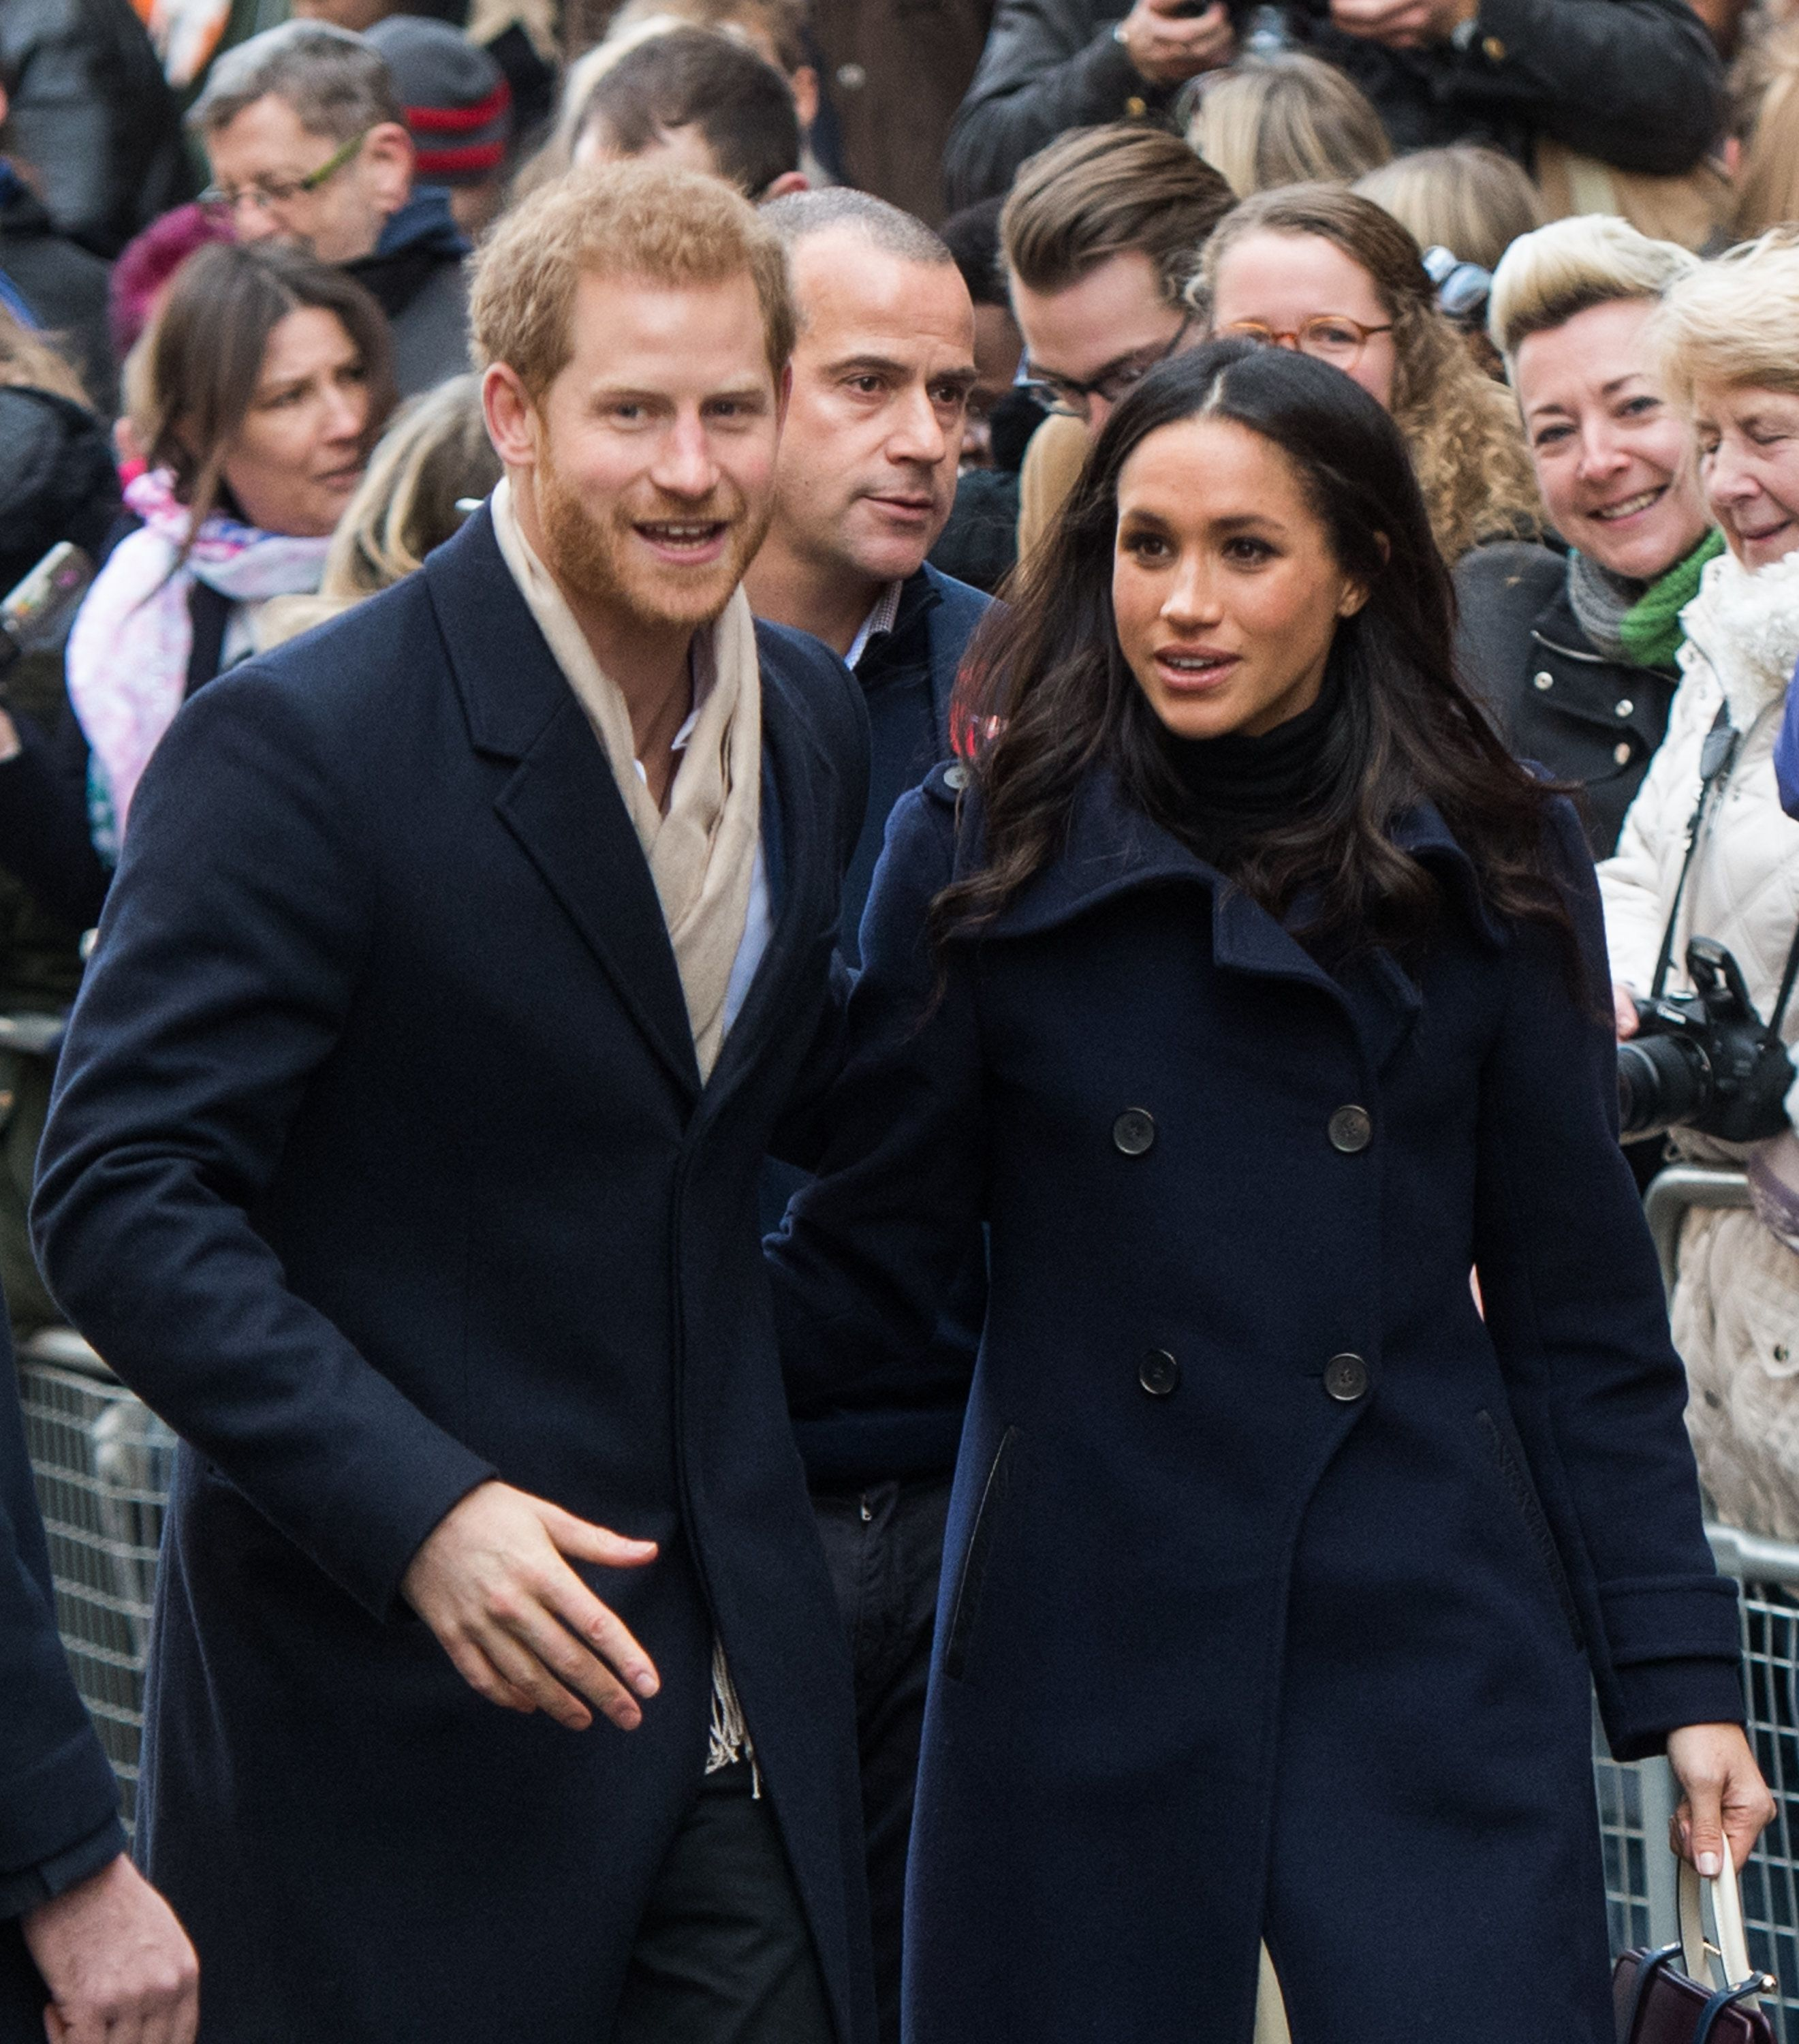 NOTTINGHAM, ENGLAND - DECEMBER 01:  Prince Harry and Meghan Markle go on a walk about at Nottingham Contemporary on December 1, 2017 in Nottingham, England.  Prince Harry and Meghan Markle announced their engagement on Monday 27th November 2017 and will marry at St George's Chapel, Windsor Castle in May 2018.  (Photo by Samir Hussein/Samir Hussein/WireImage)